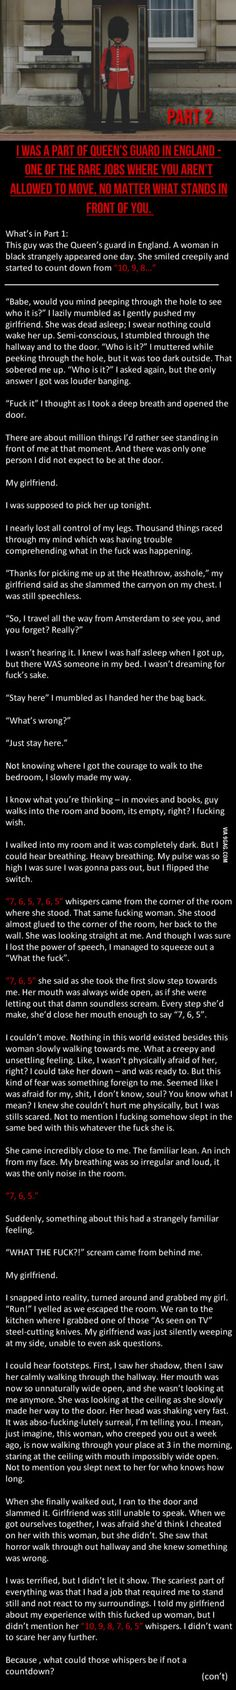 Part 2 to this creepy story...